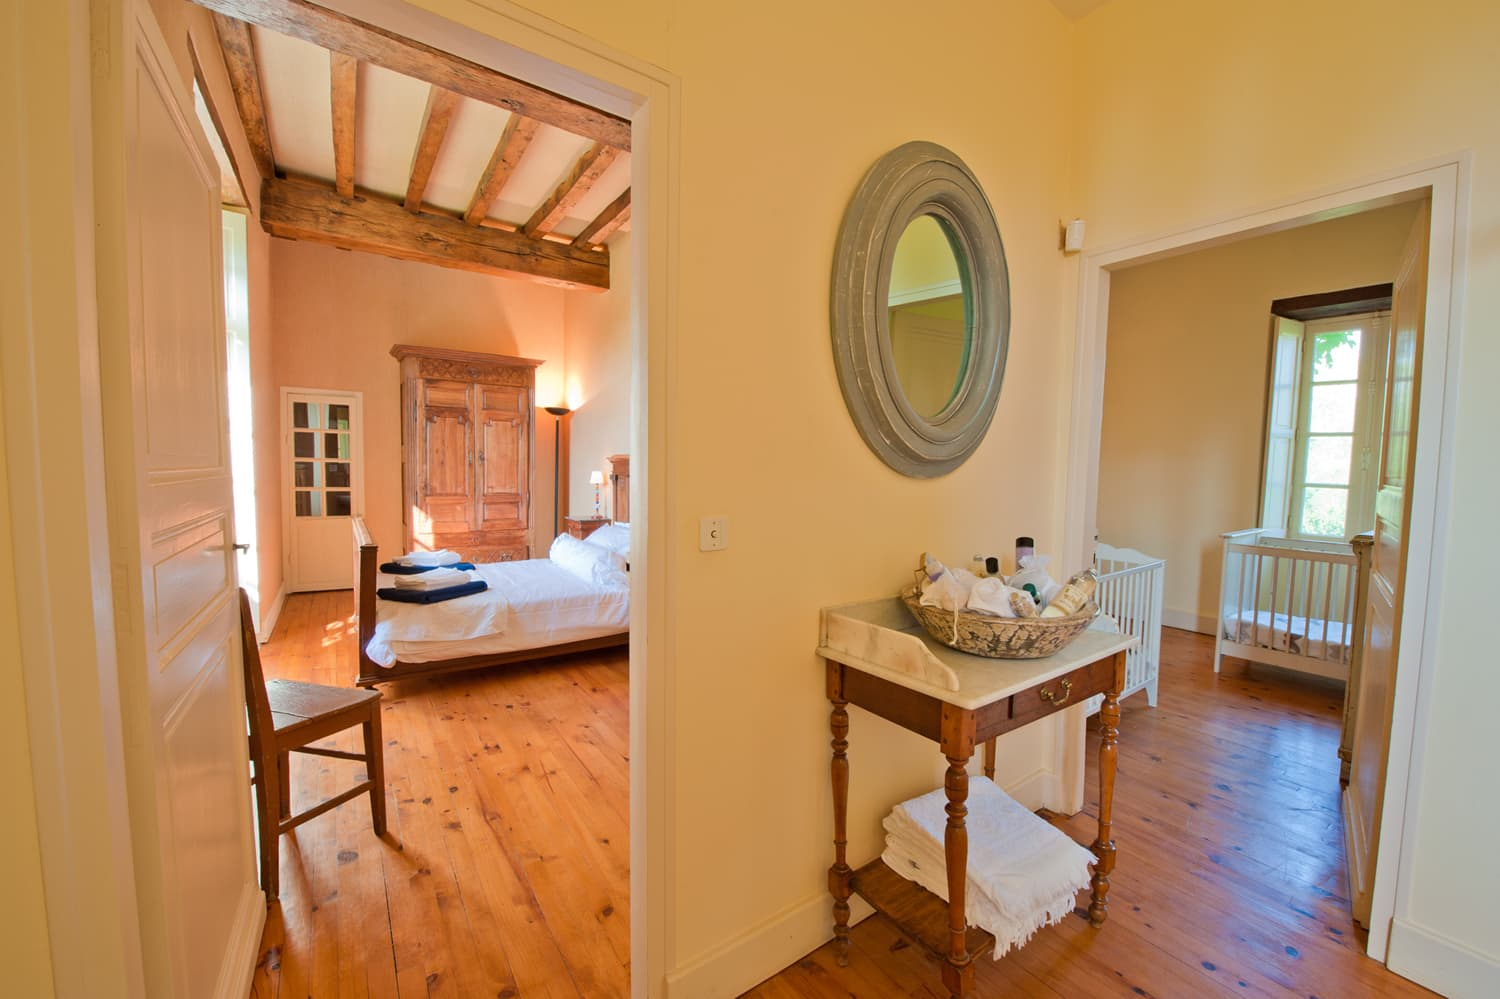 Bedrooms in South West France rental home